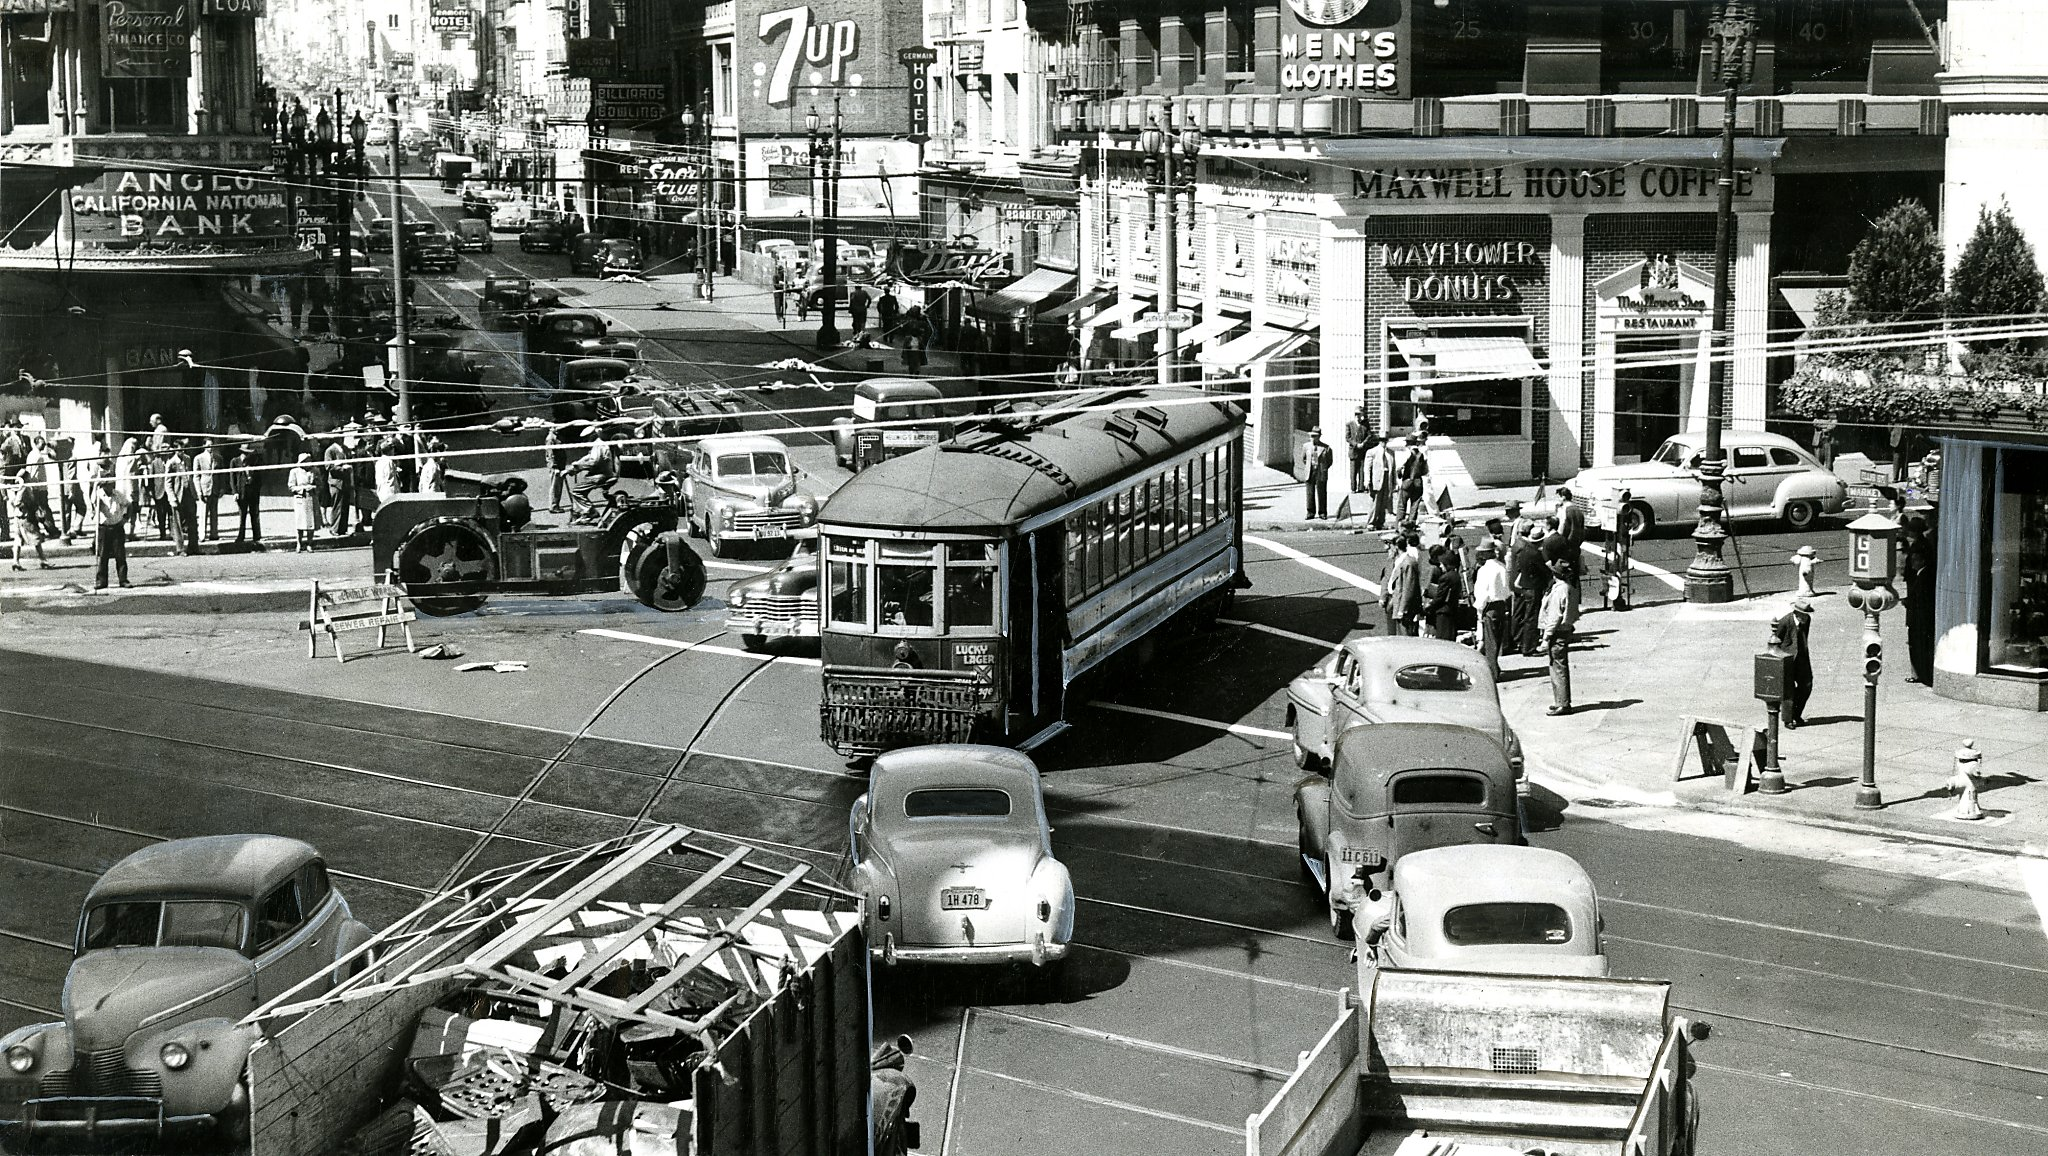 Rare Unseen Downtown San Francisco Photos Show City Life